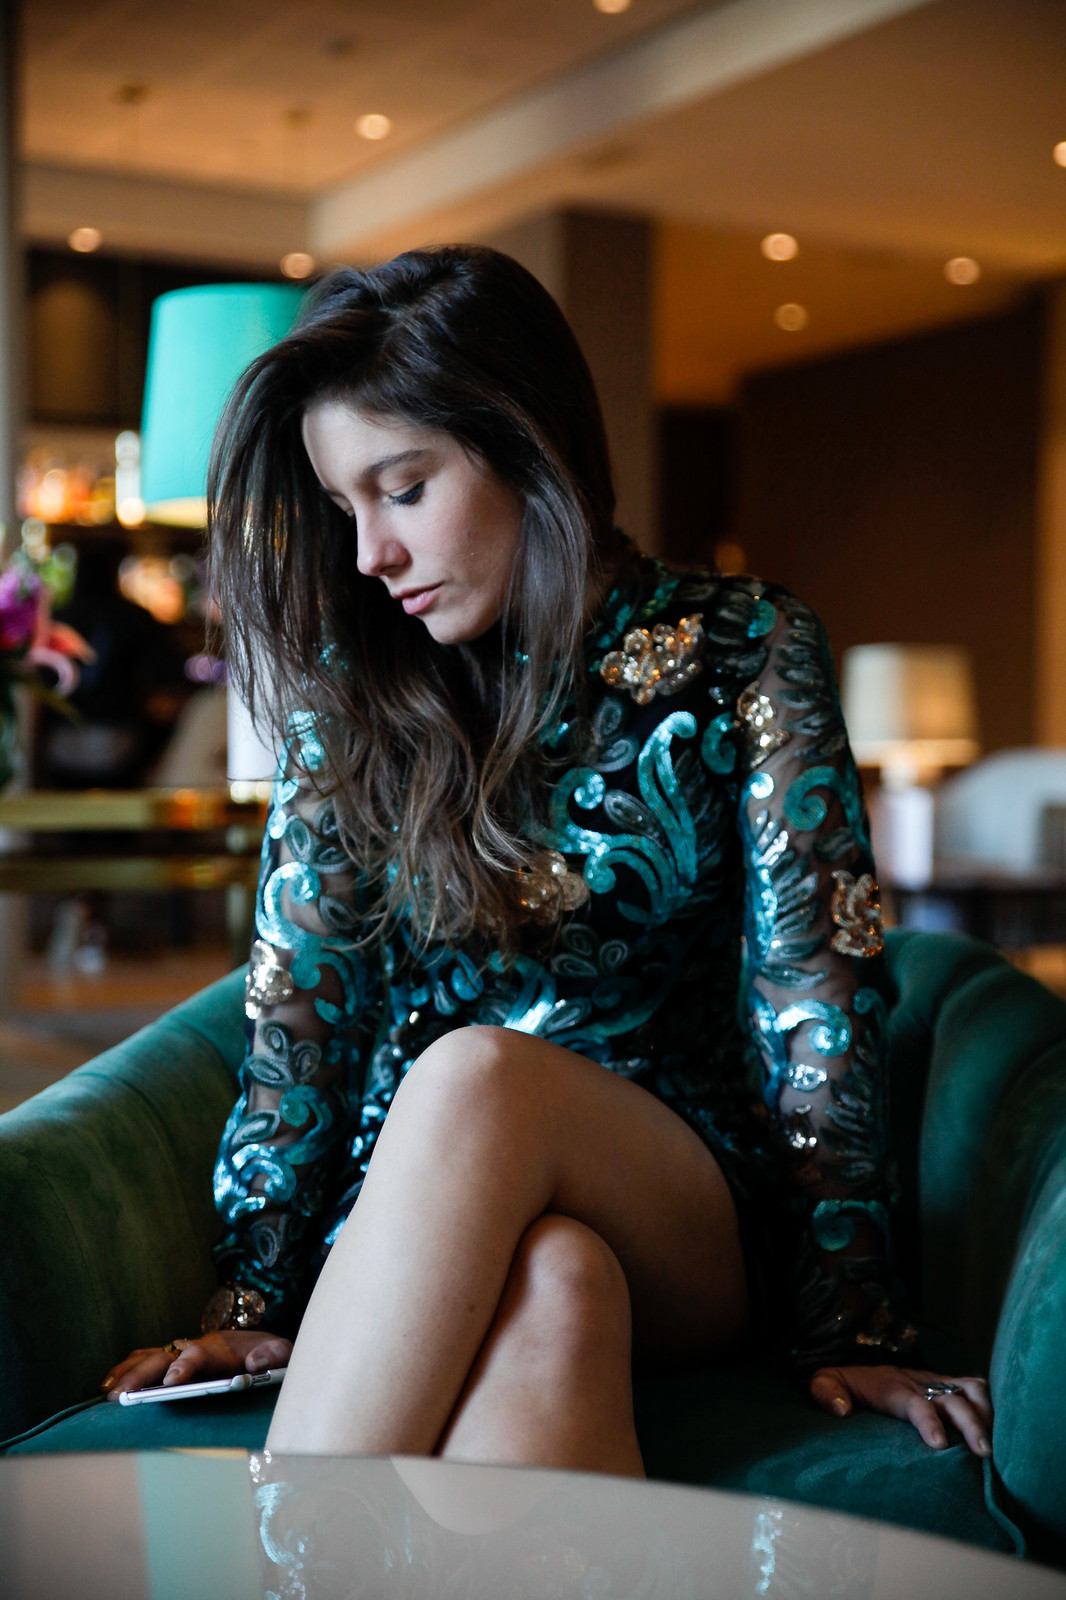 02_Green_sequins_dress_outfit_the_guest_girl_theguestgirl_laura_santolaria_fashion_blogger_danity_paris_influencer_barcelona